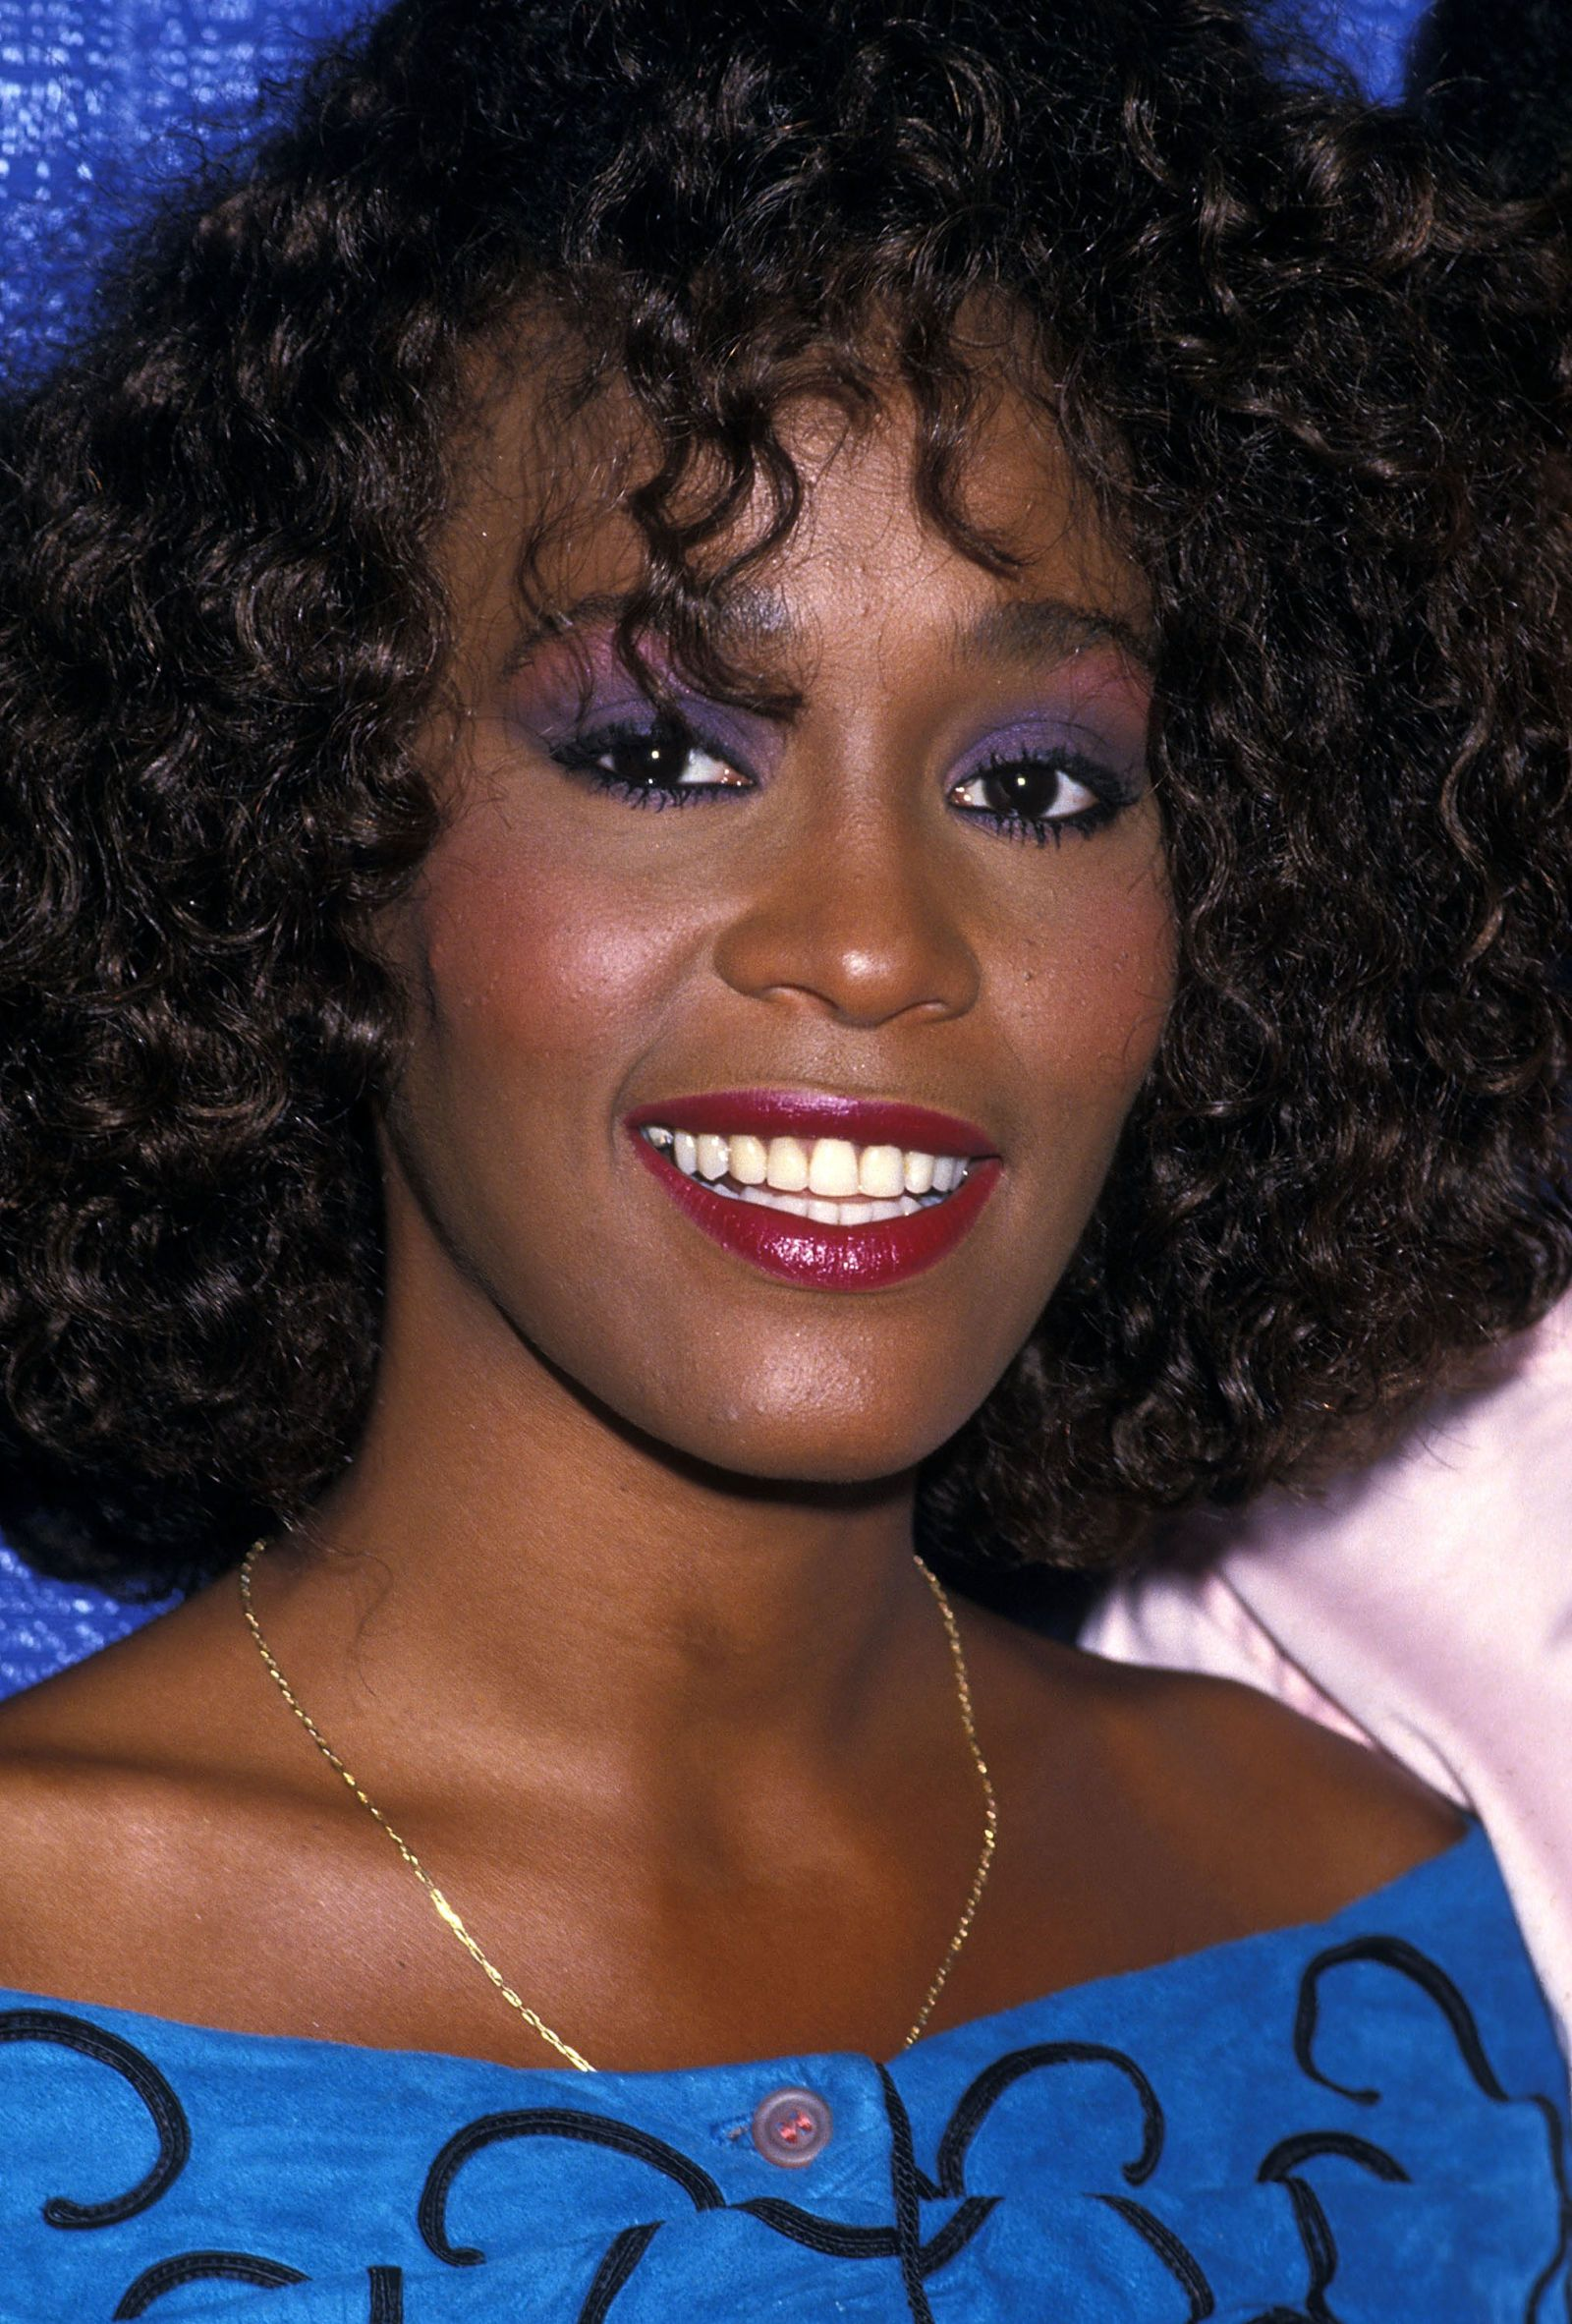 80s hair and makeup trends